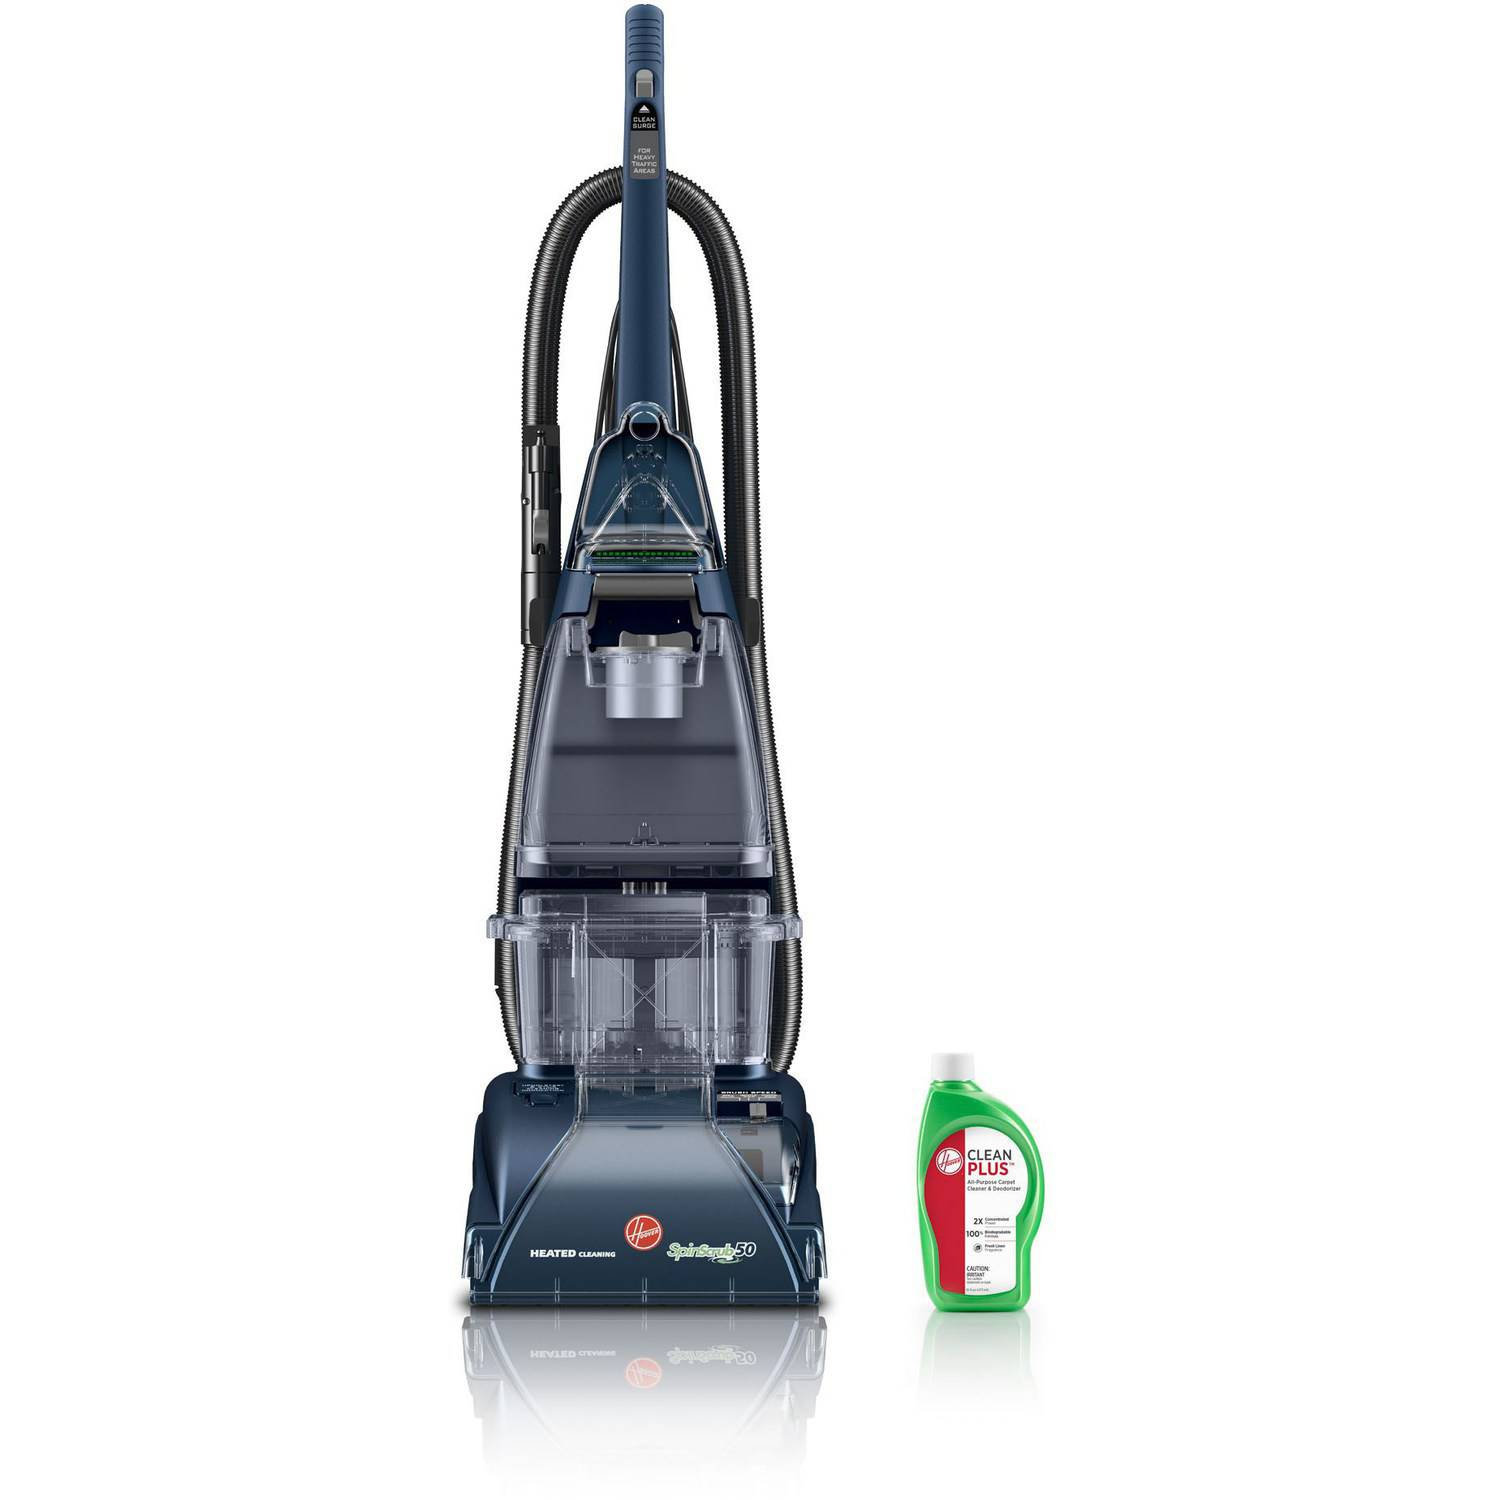 Hoover Spinscrub Carpet Cleaner Brushes Won T Spin